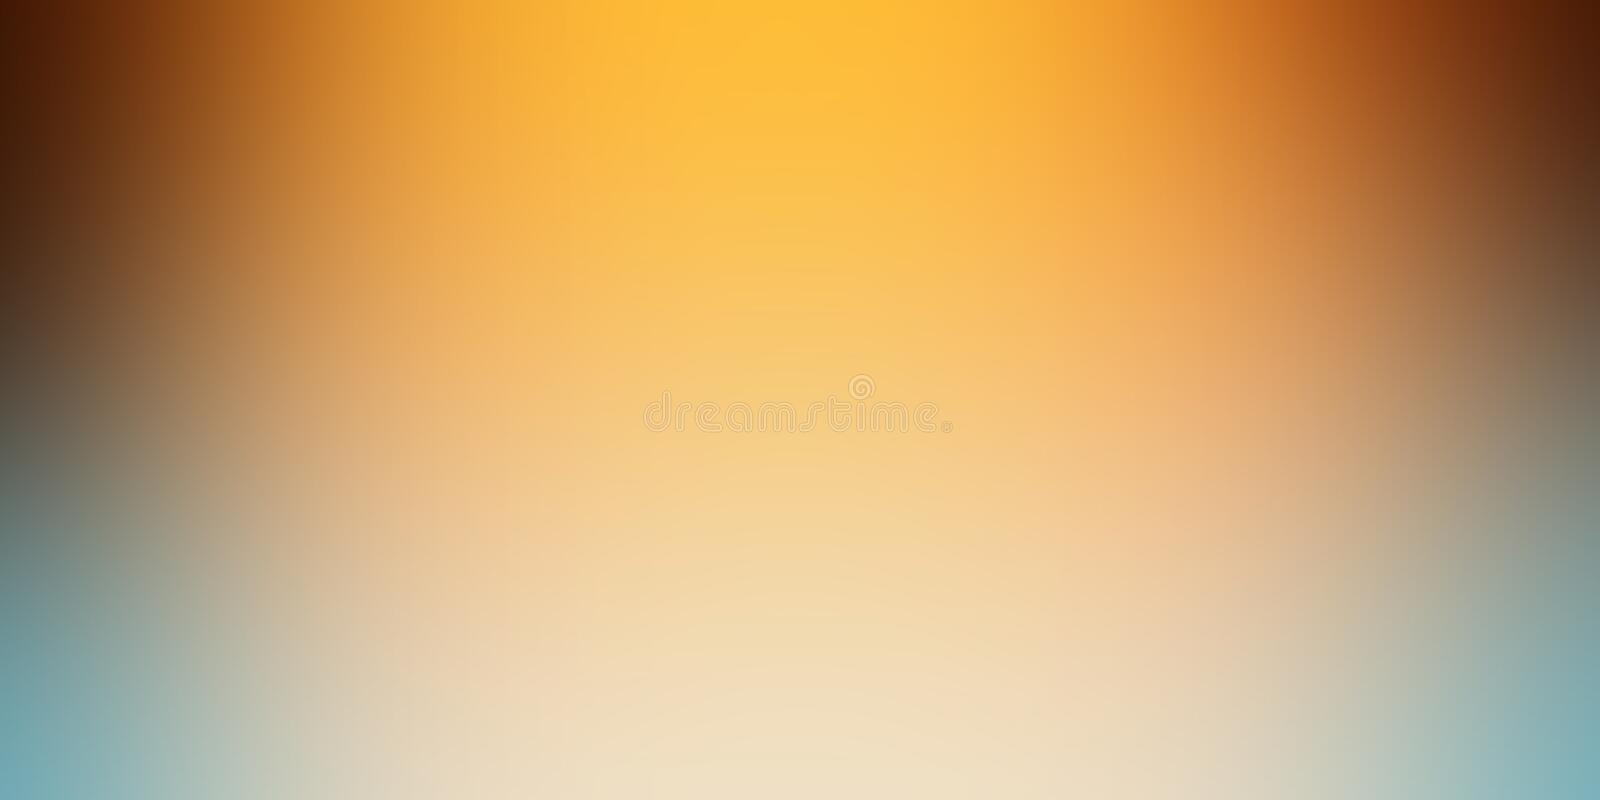 Gold orange background blur in soft yellow black white and blue with shiny spotlight from top border with smooth blurry texture stock illustration